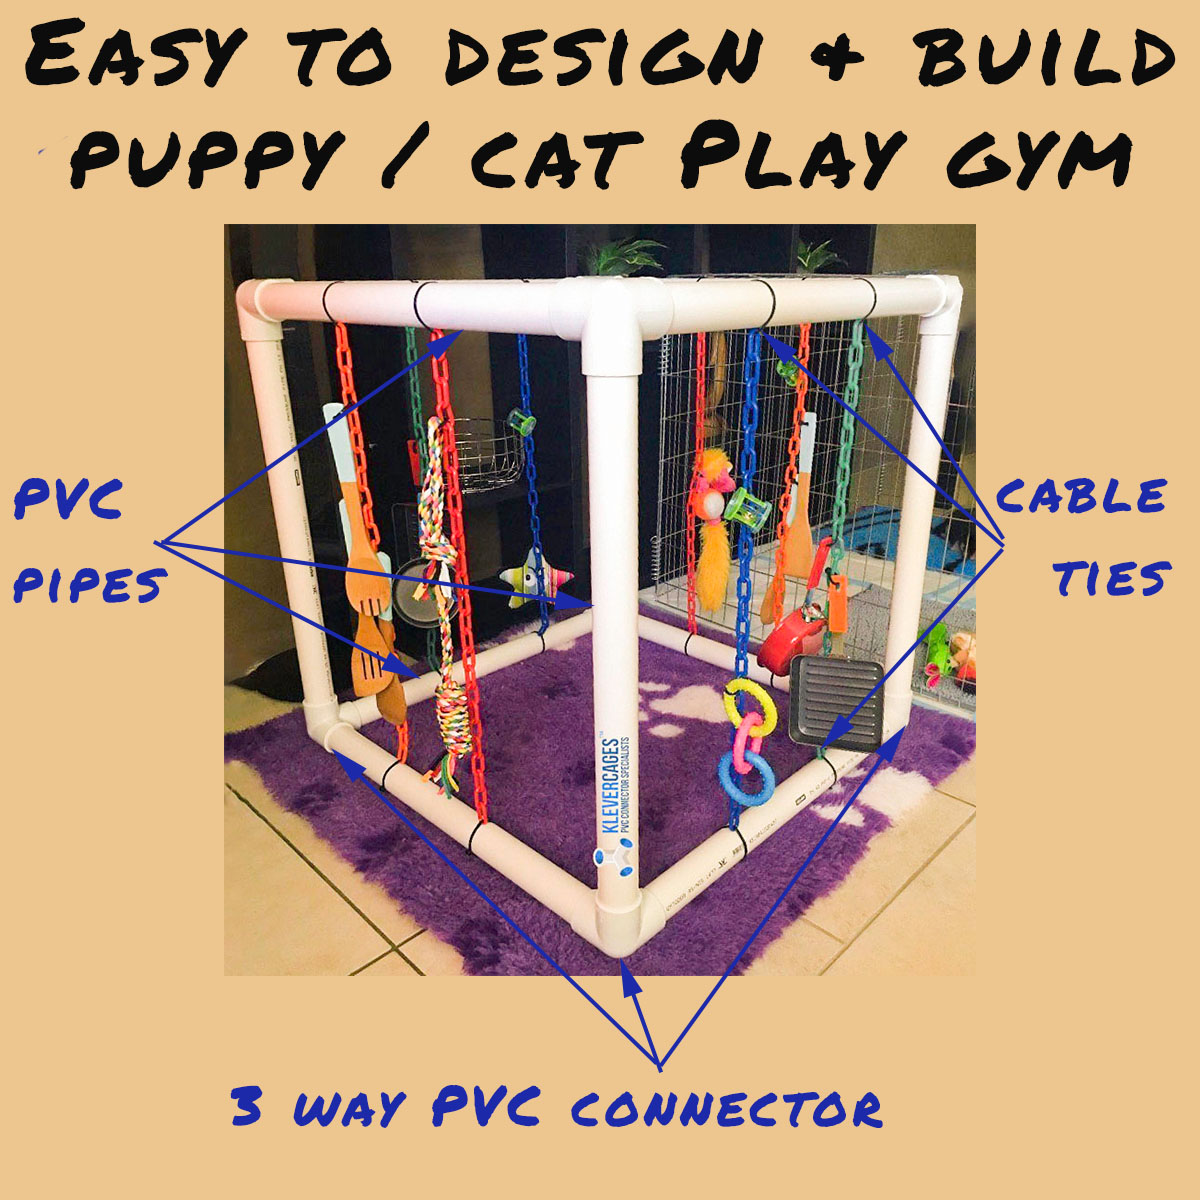 White puppy play gym built with white PVC connectors and pipe from Klever Cages Australia. Dog toys hanging with plastic chains and attached with cable ties